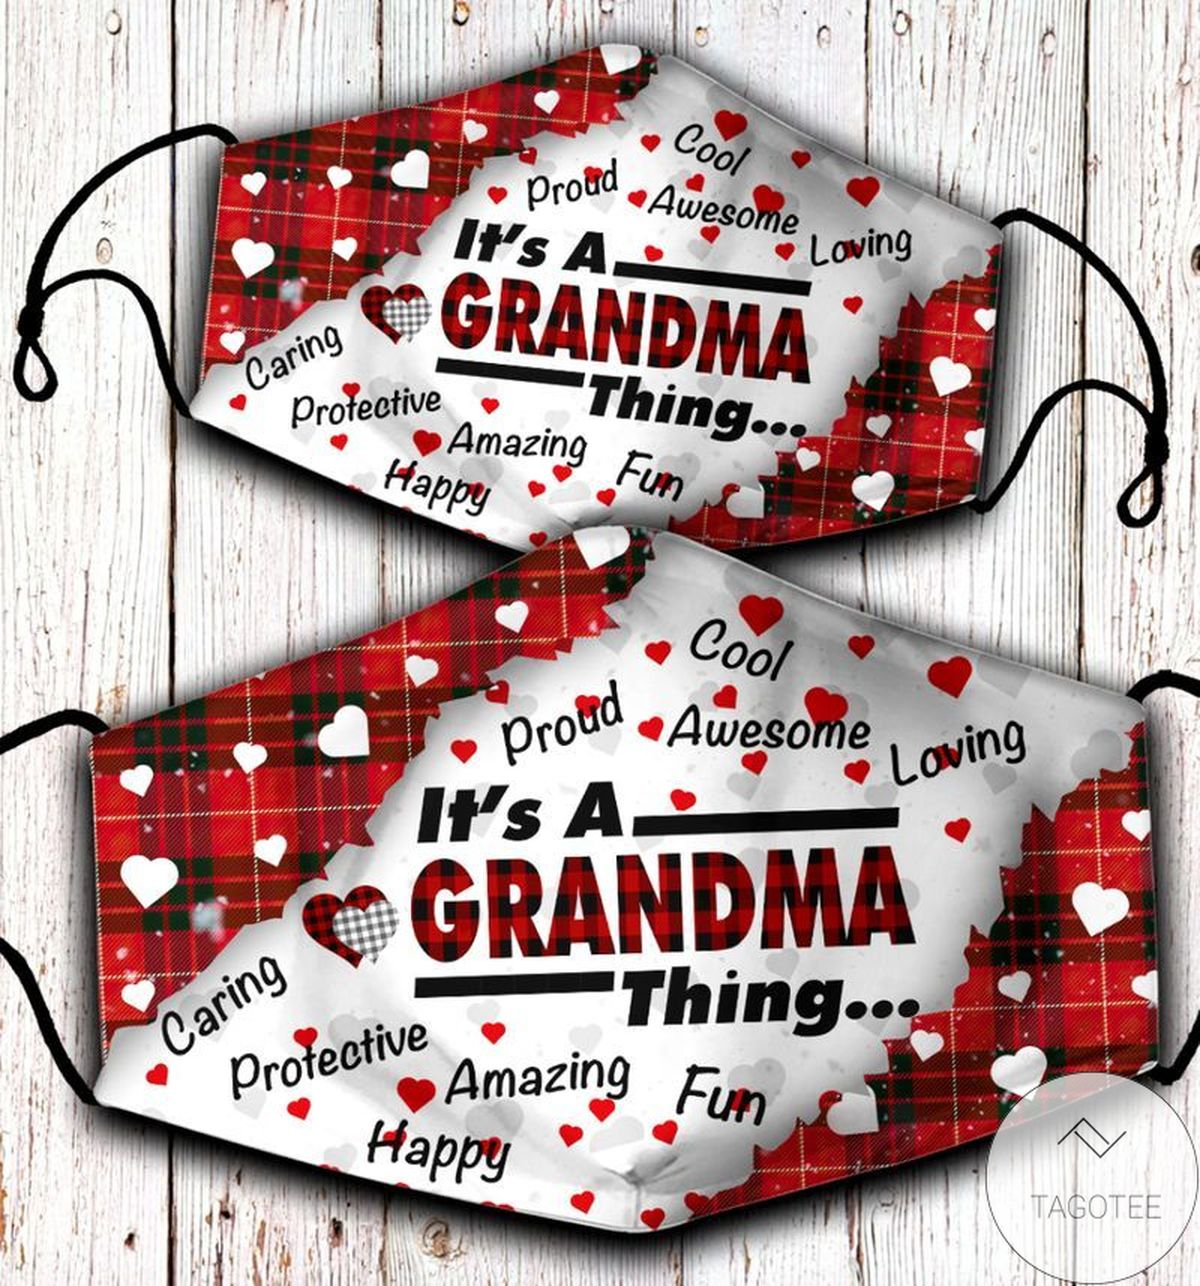 It's A Grandma Thing Cool Awesome Caring Amazing Mask